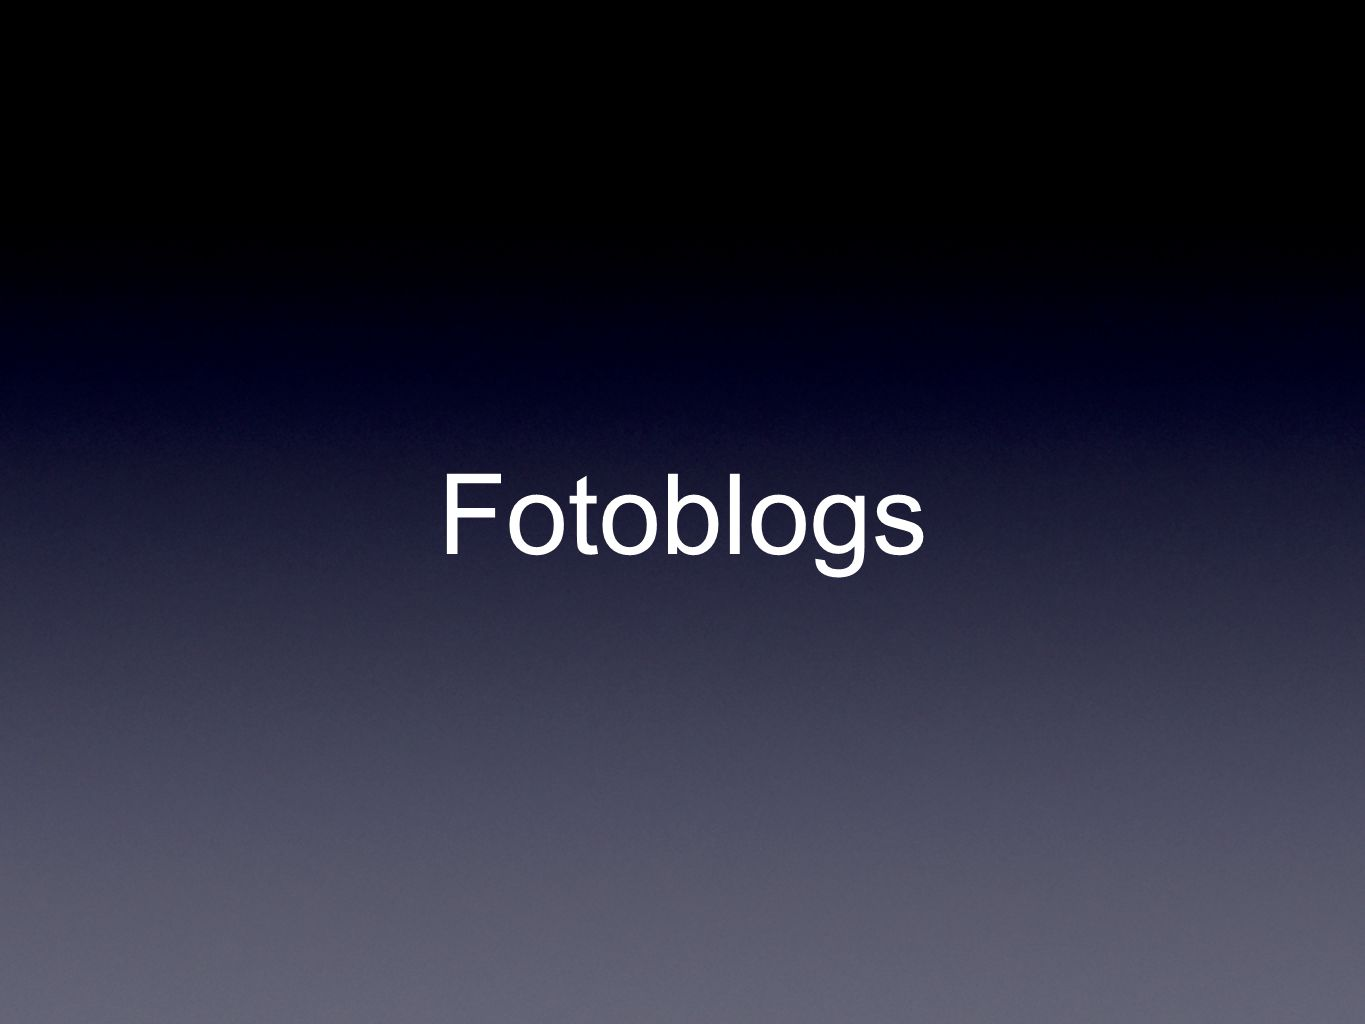 Fotoblogs